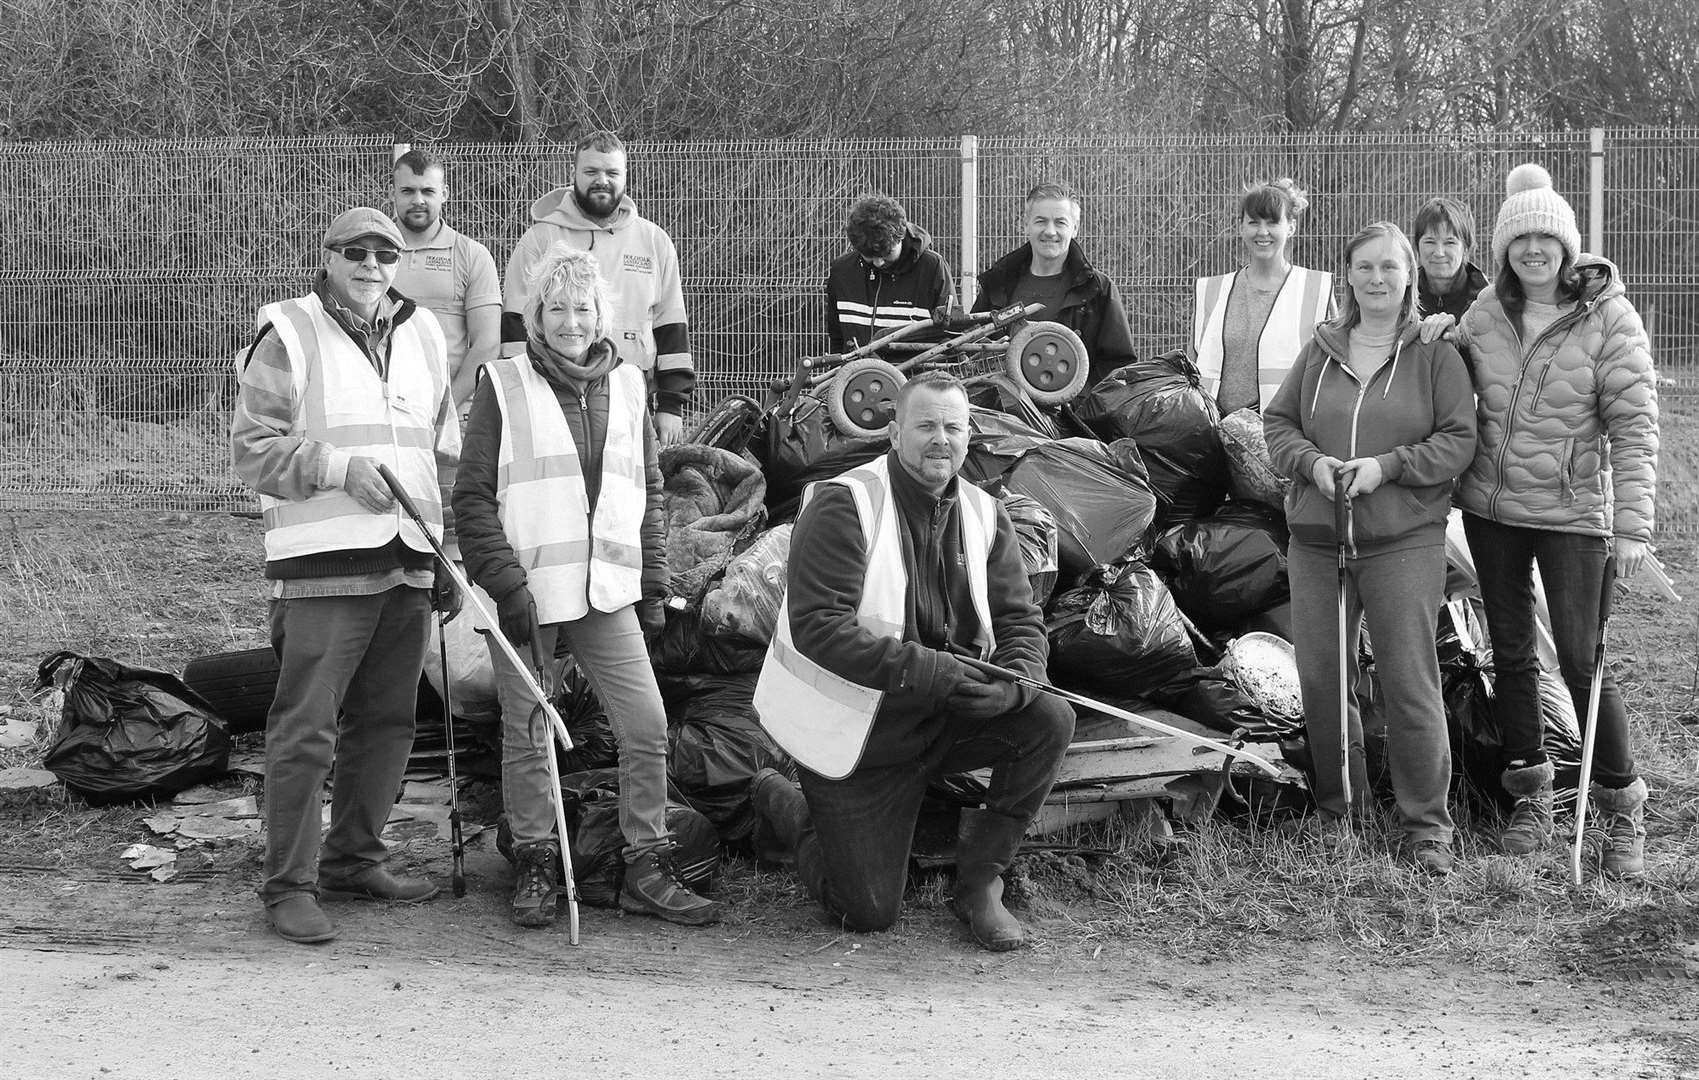 Volunteers taking part in Saturday's Community Litter Pick on Stumps Lane, organised by Flytipping Watch Spalding & Local (image provided by Flytipping Watch) (7412035)